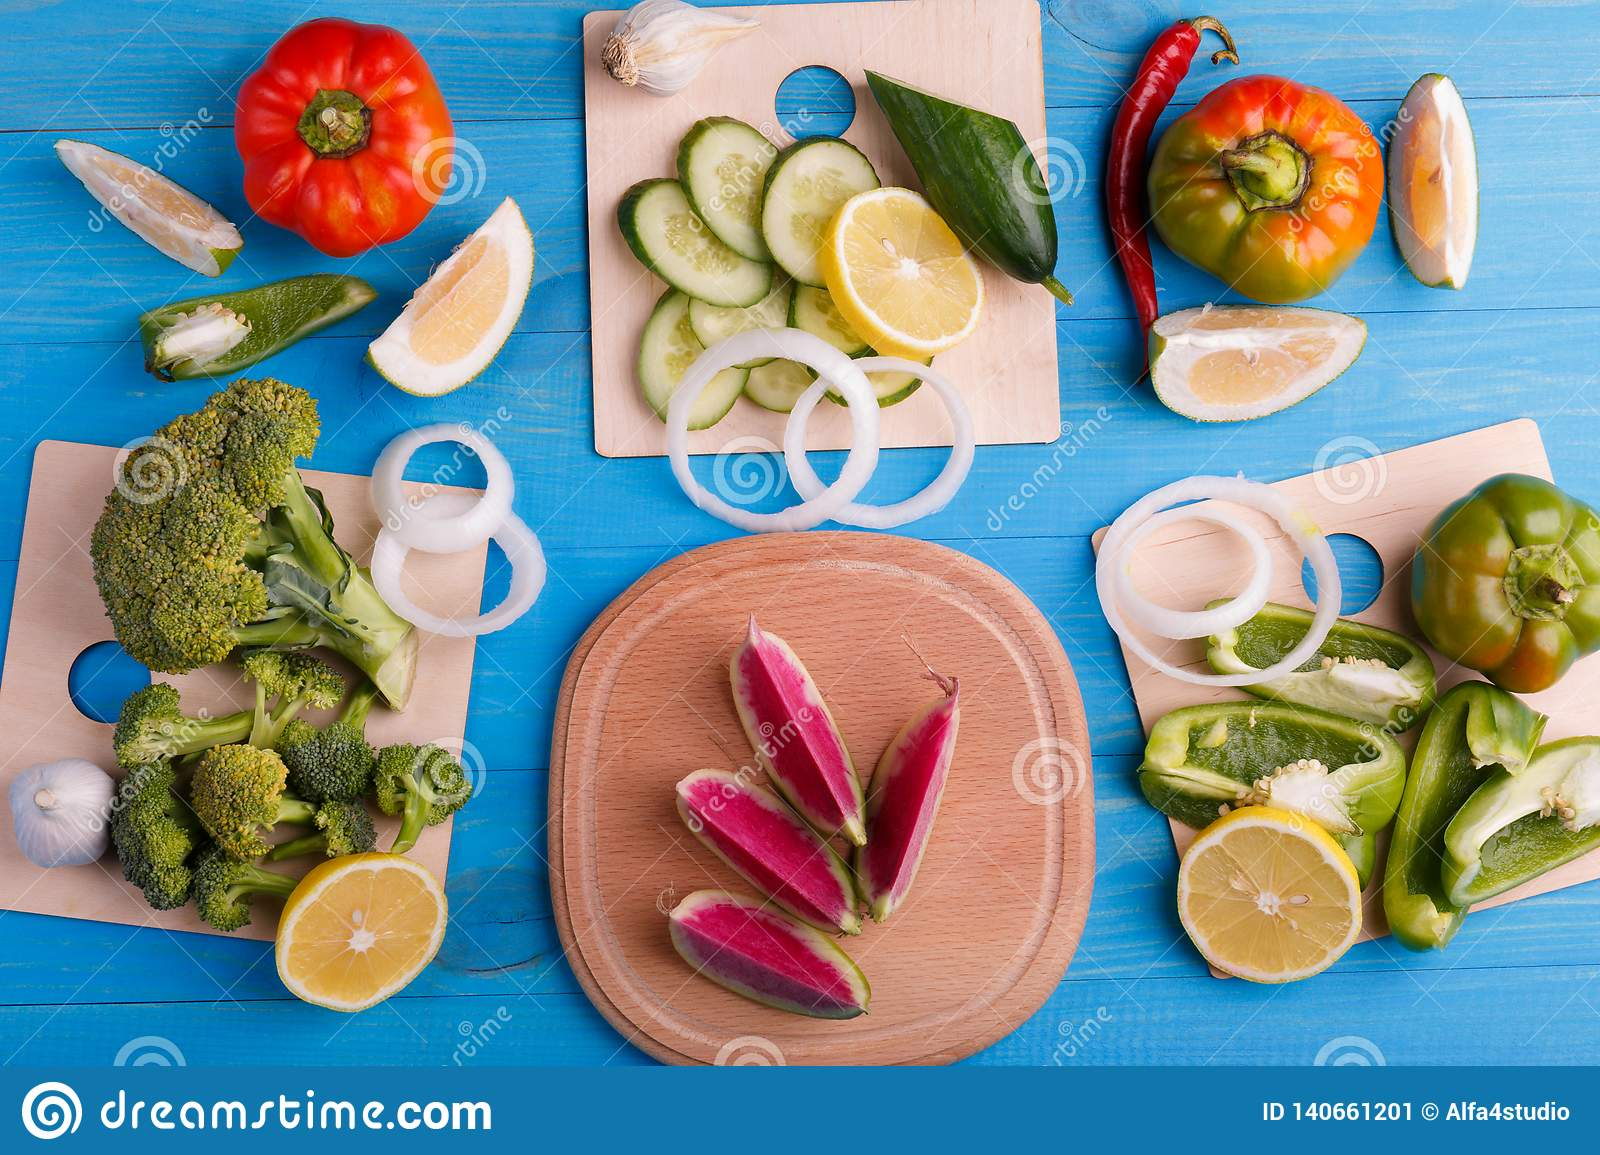 Healthy eating background studio photography of different fruits and vegetables on old wooden table